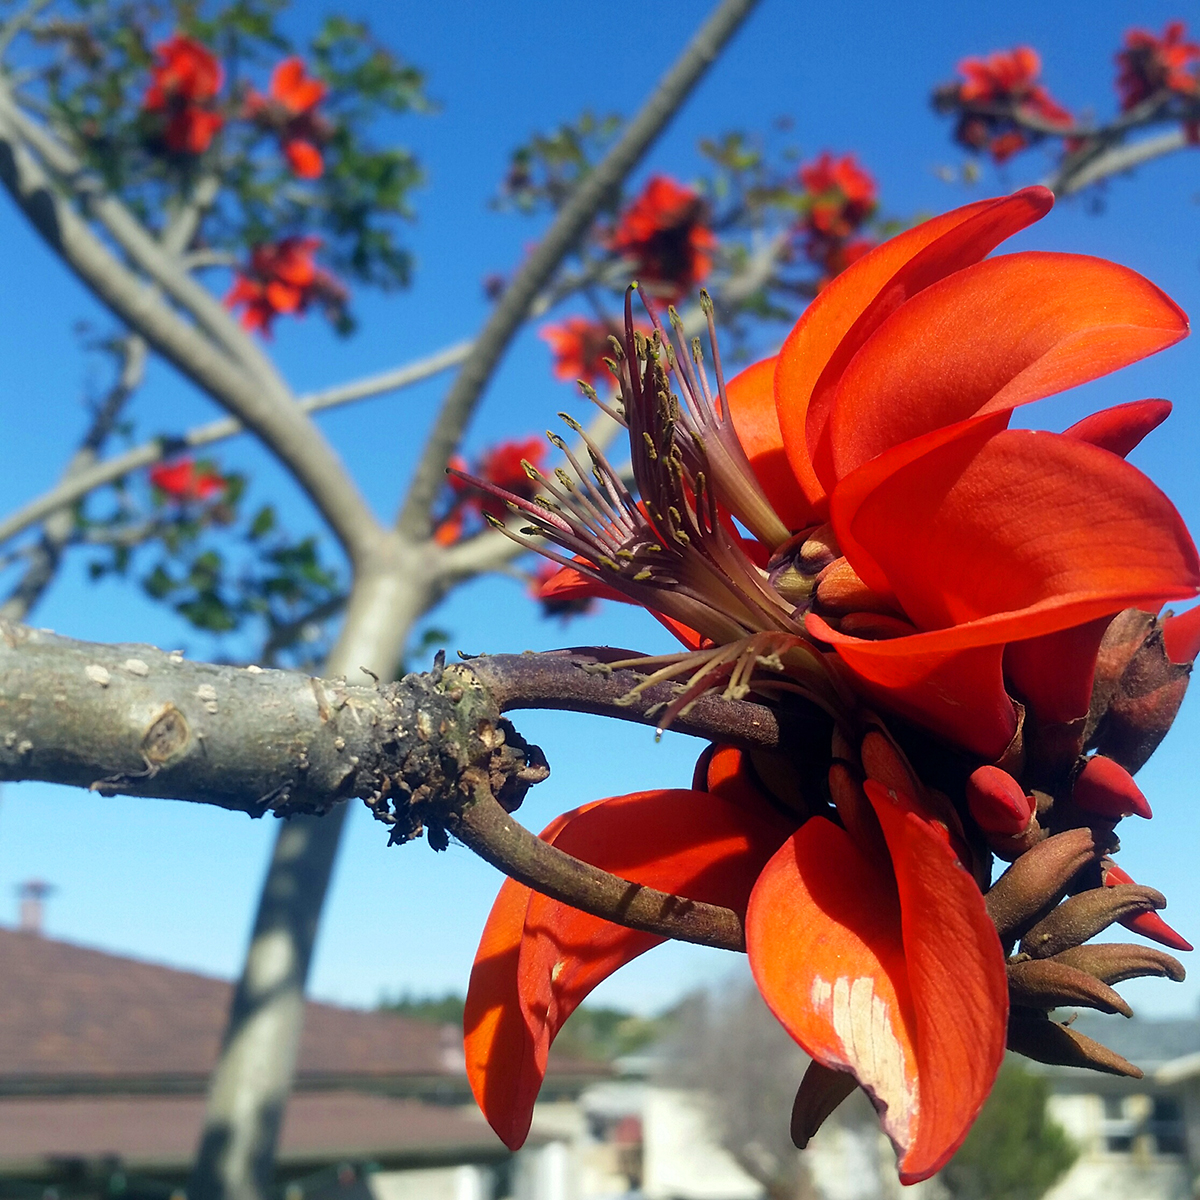 My Big Ass Lady: Update on the Coastal Coral Tree